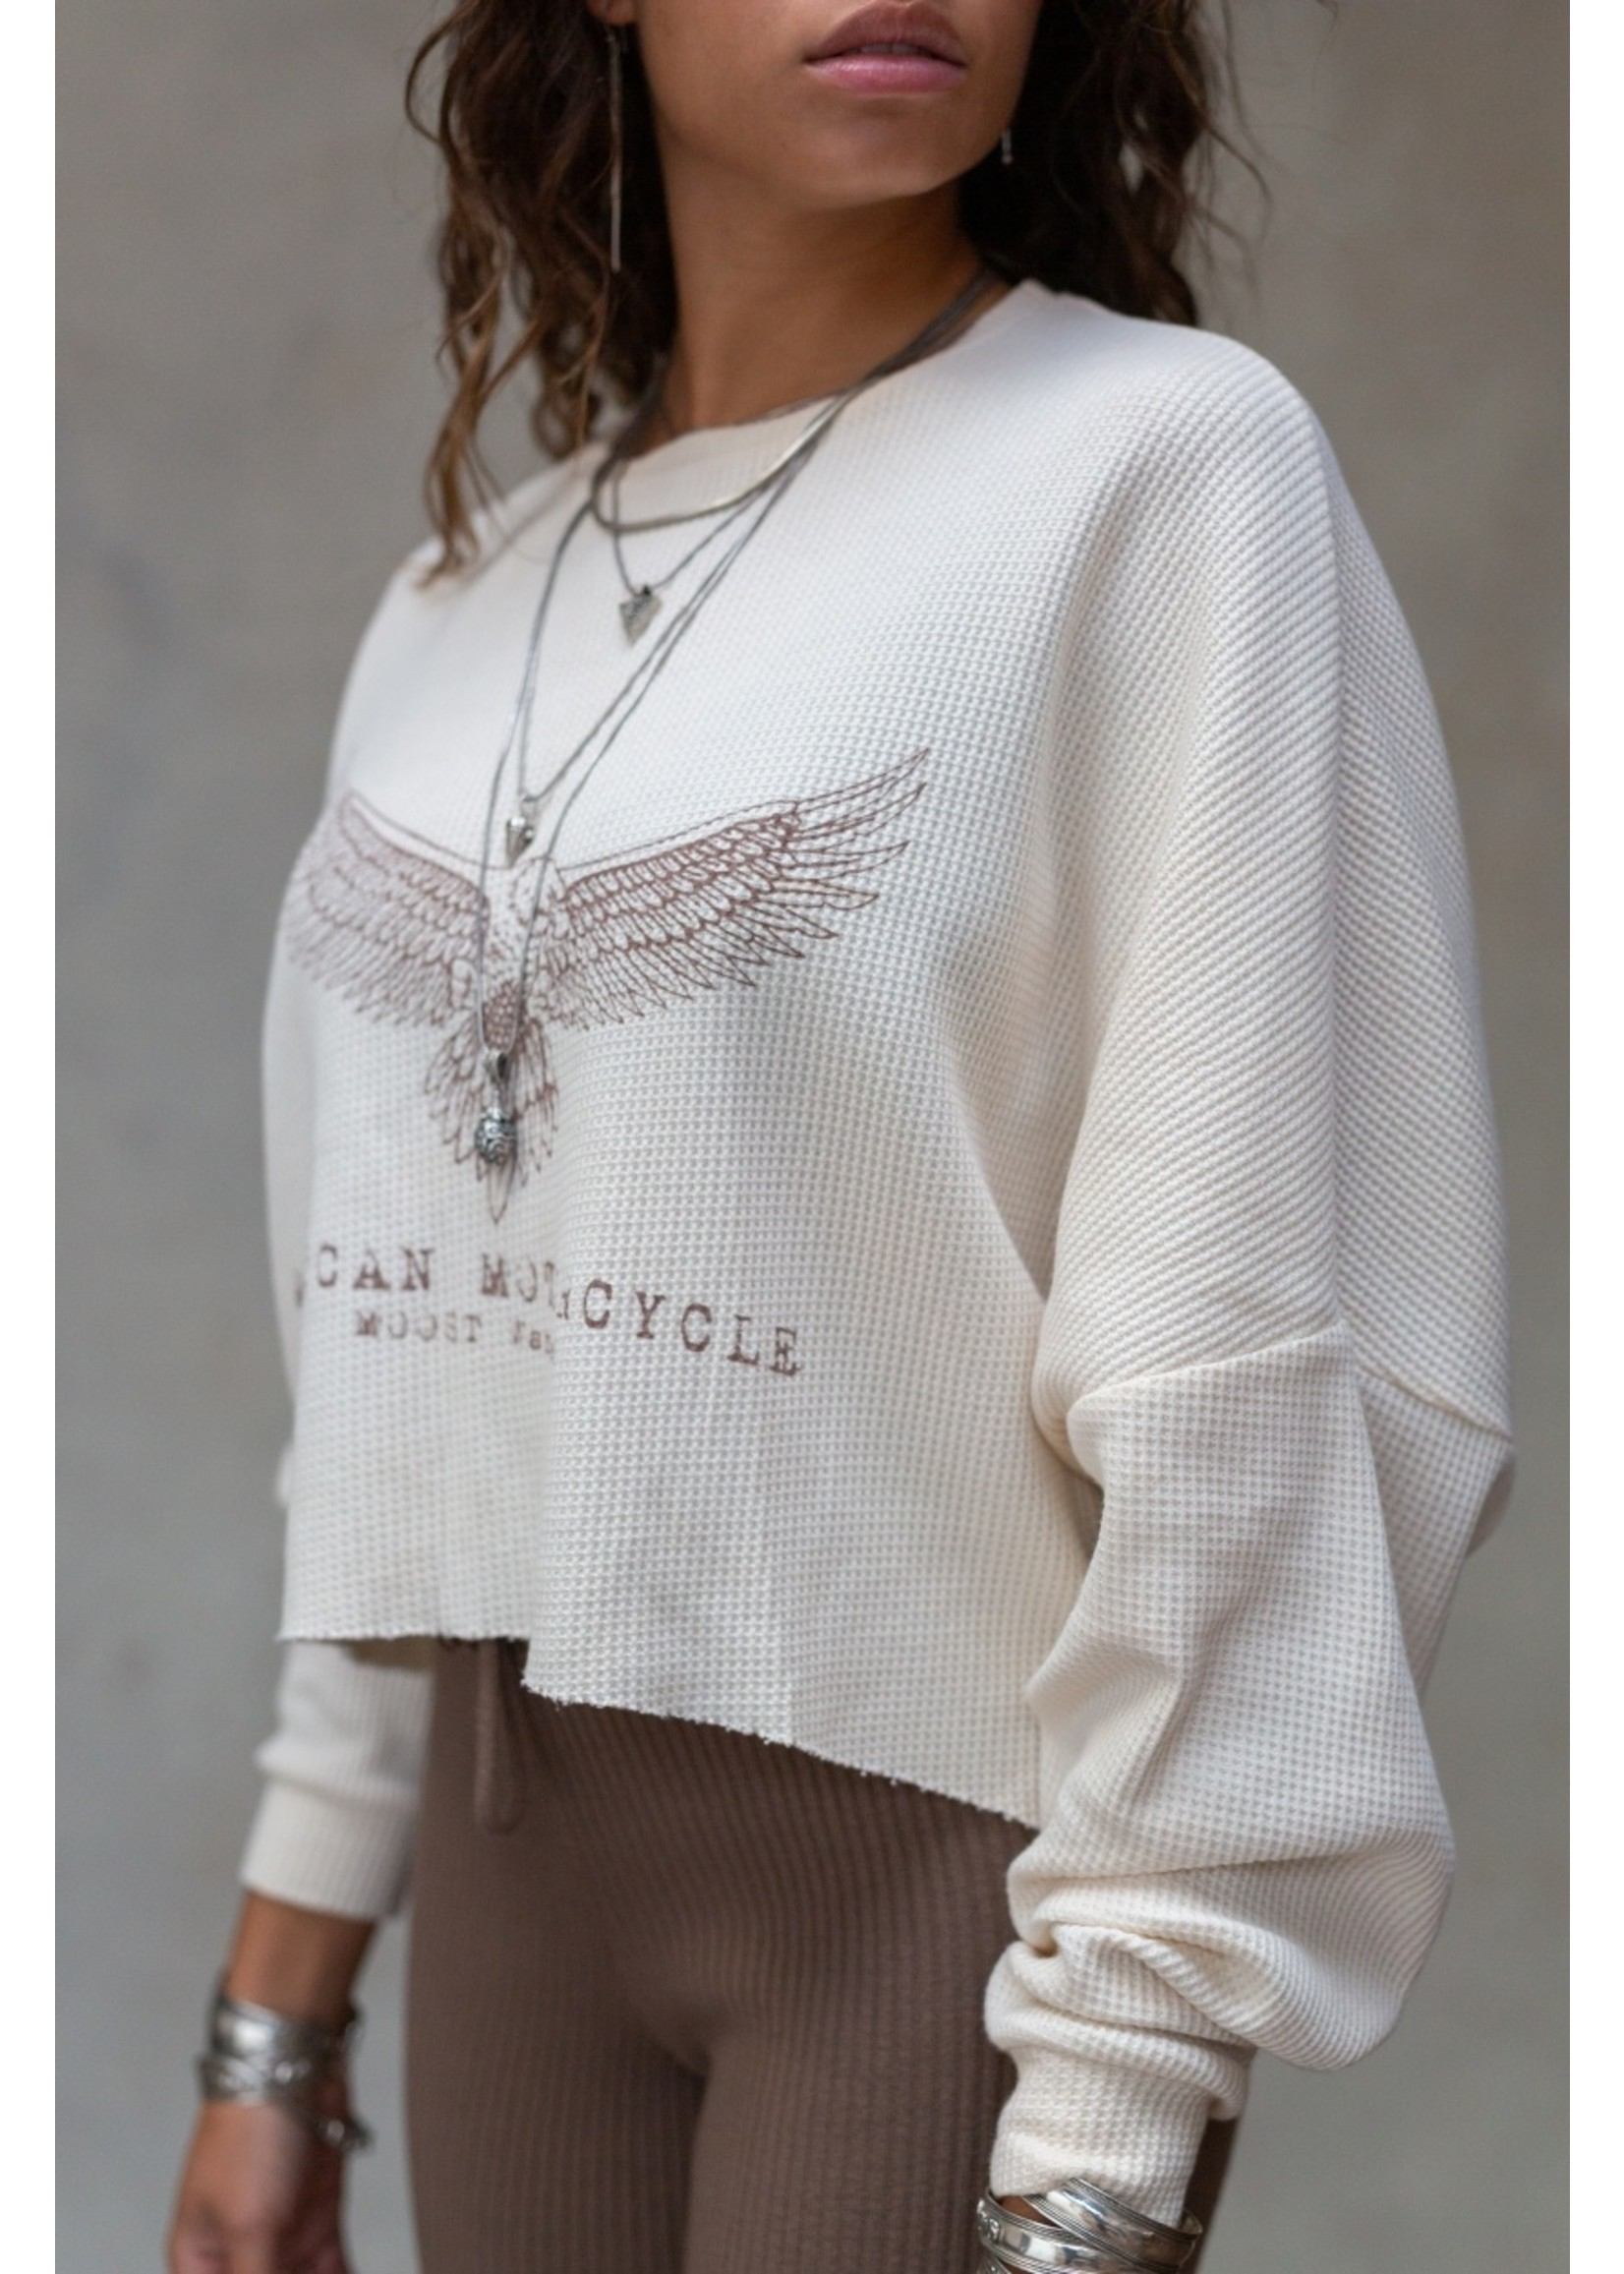 Moost Wanted Aquila sweater